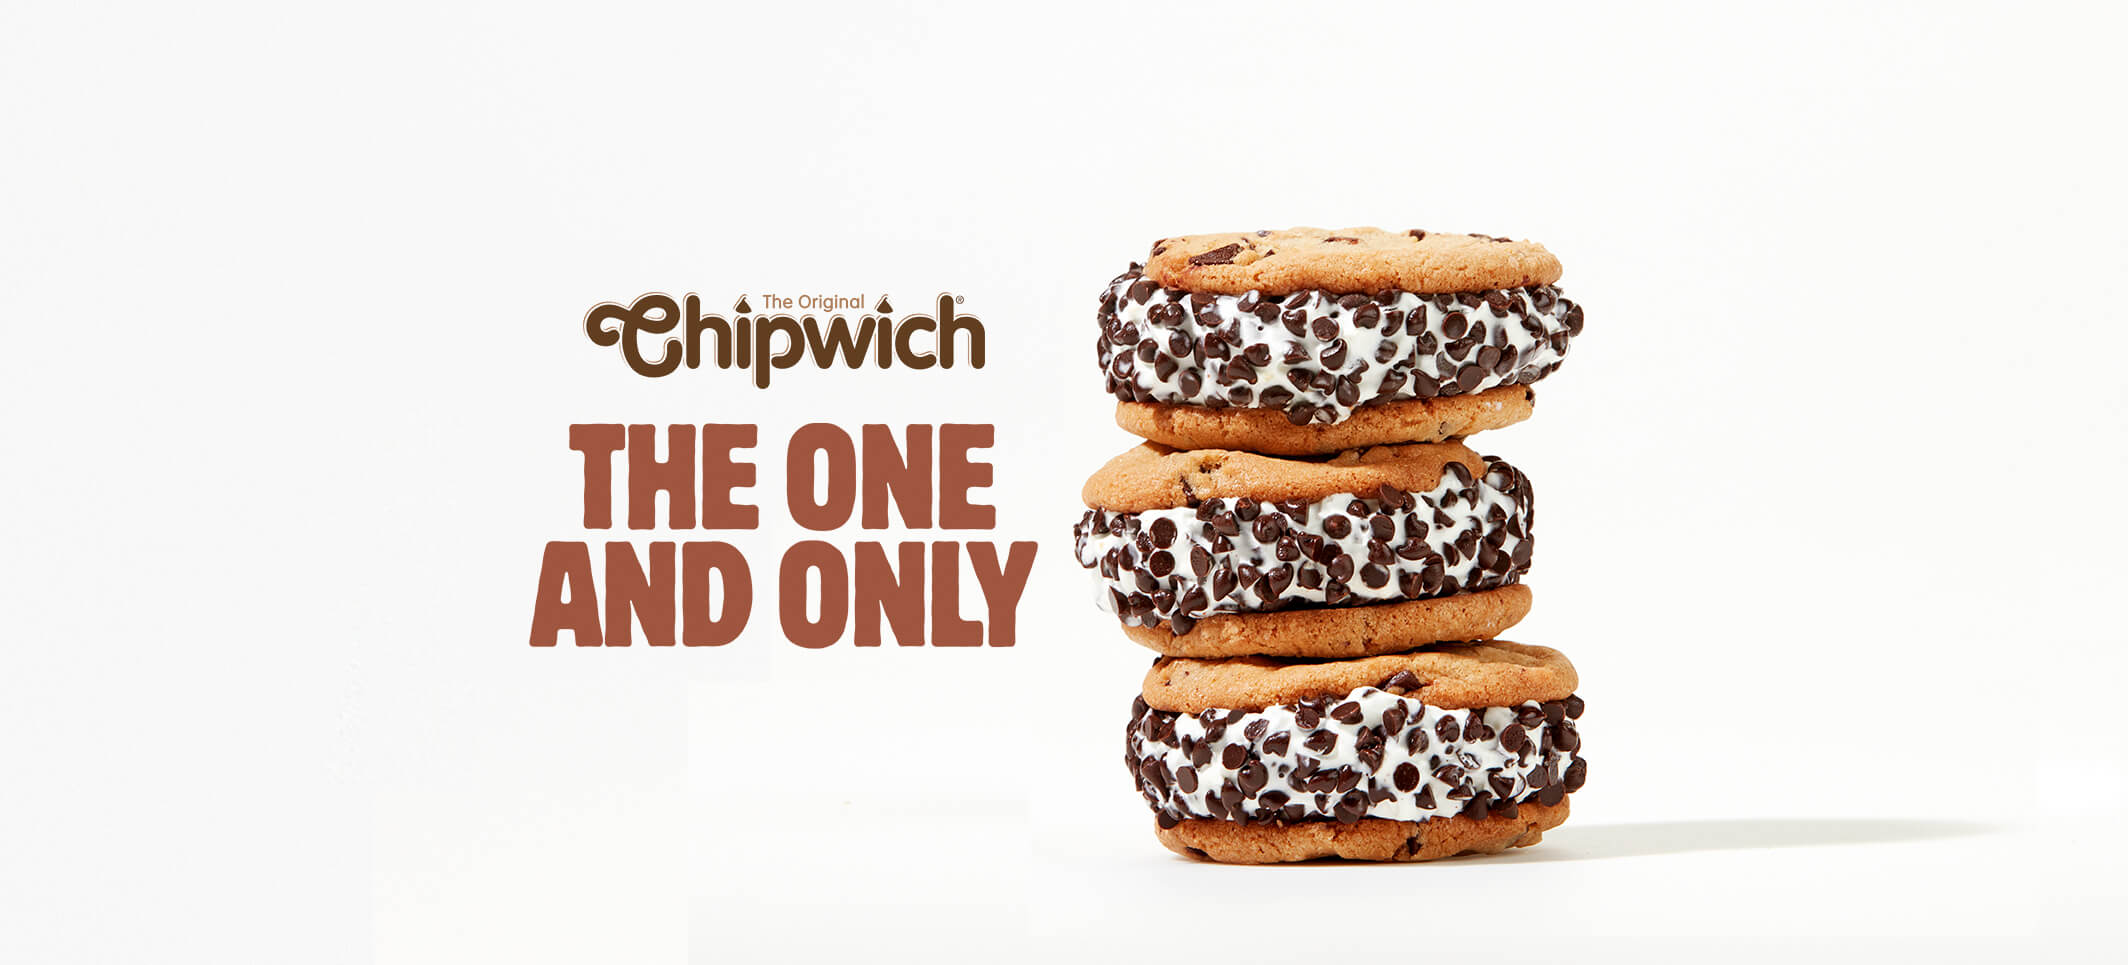 The Original Chipwich Ice Cream Cookie Sandwich